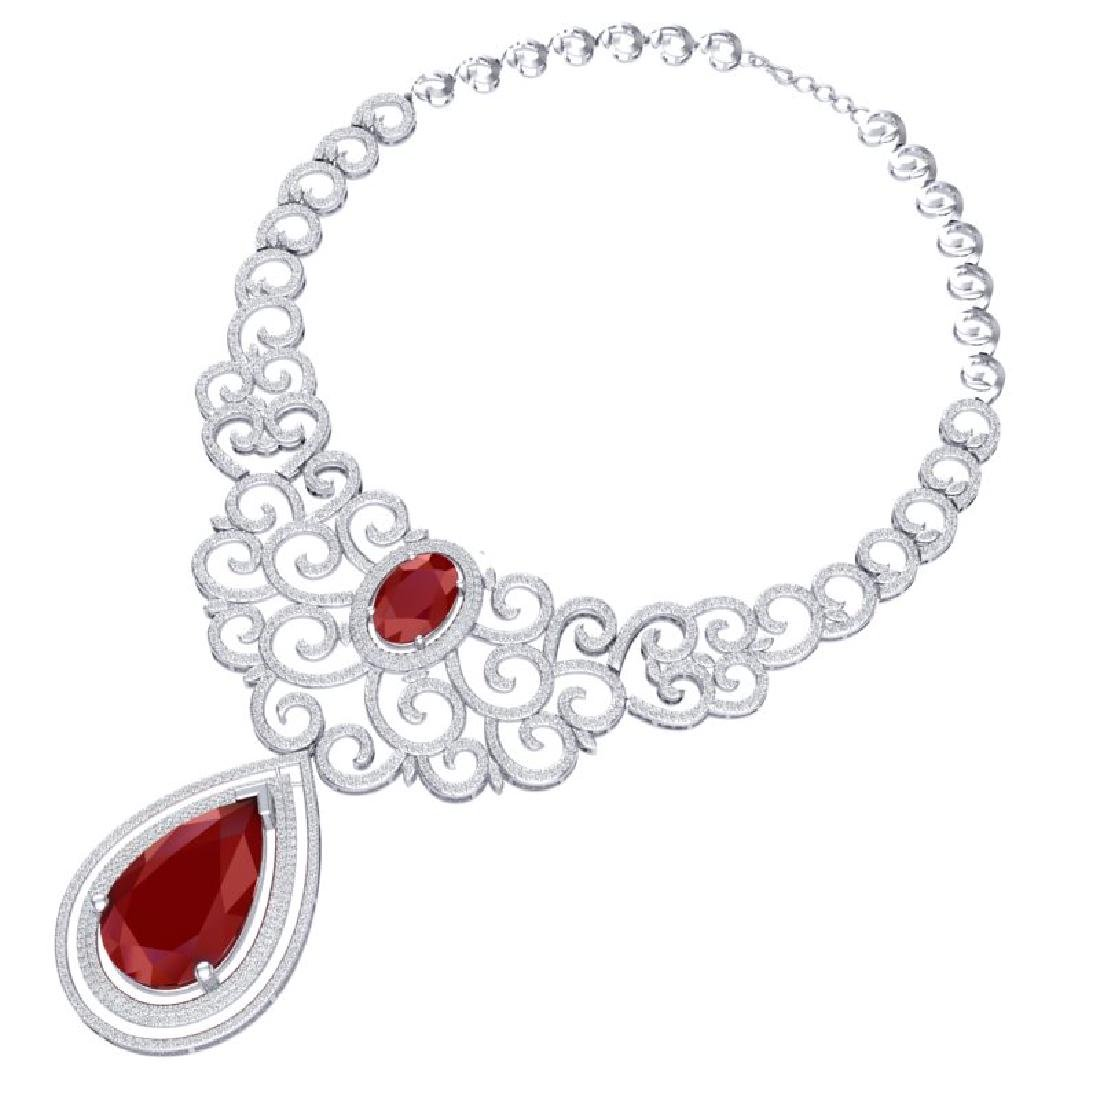 87.52 CTW Royalty Ruby & VS Diamond Necklace 18K White - 2